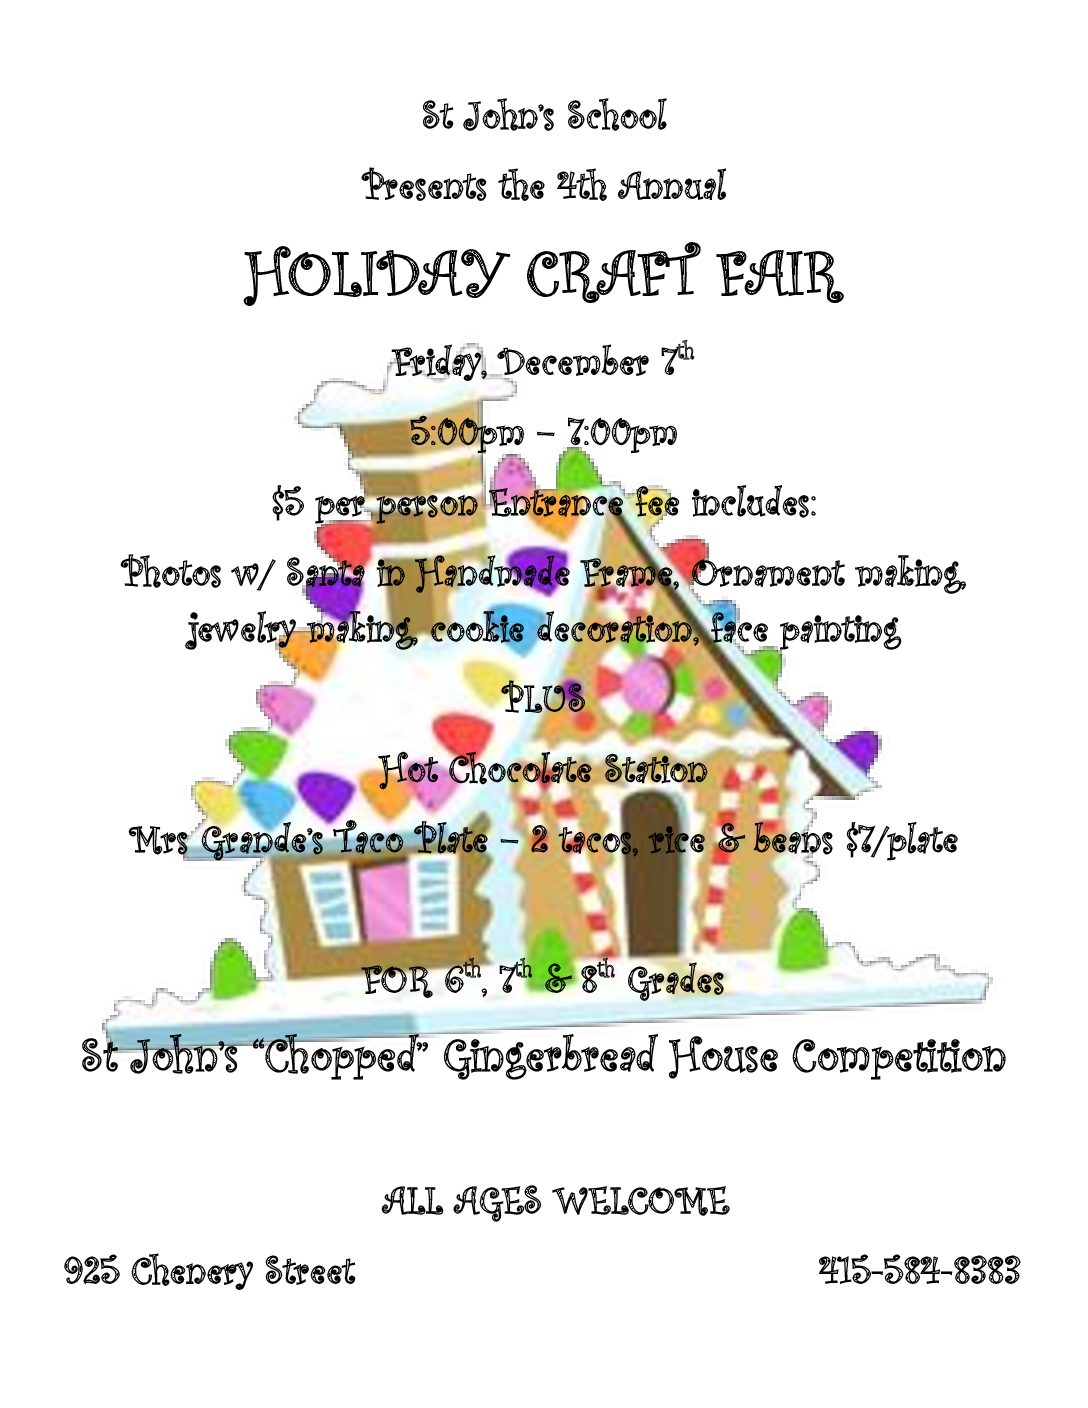 REMINDER:  HOLIDAY CRAFTS FAIR!